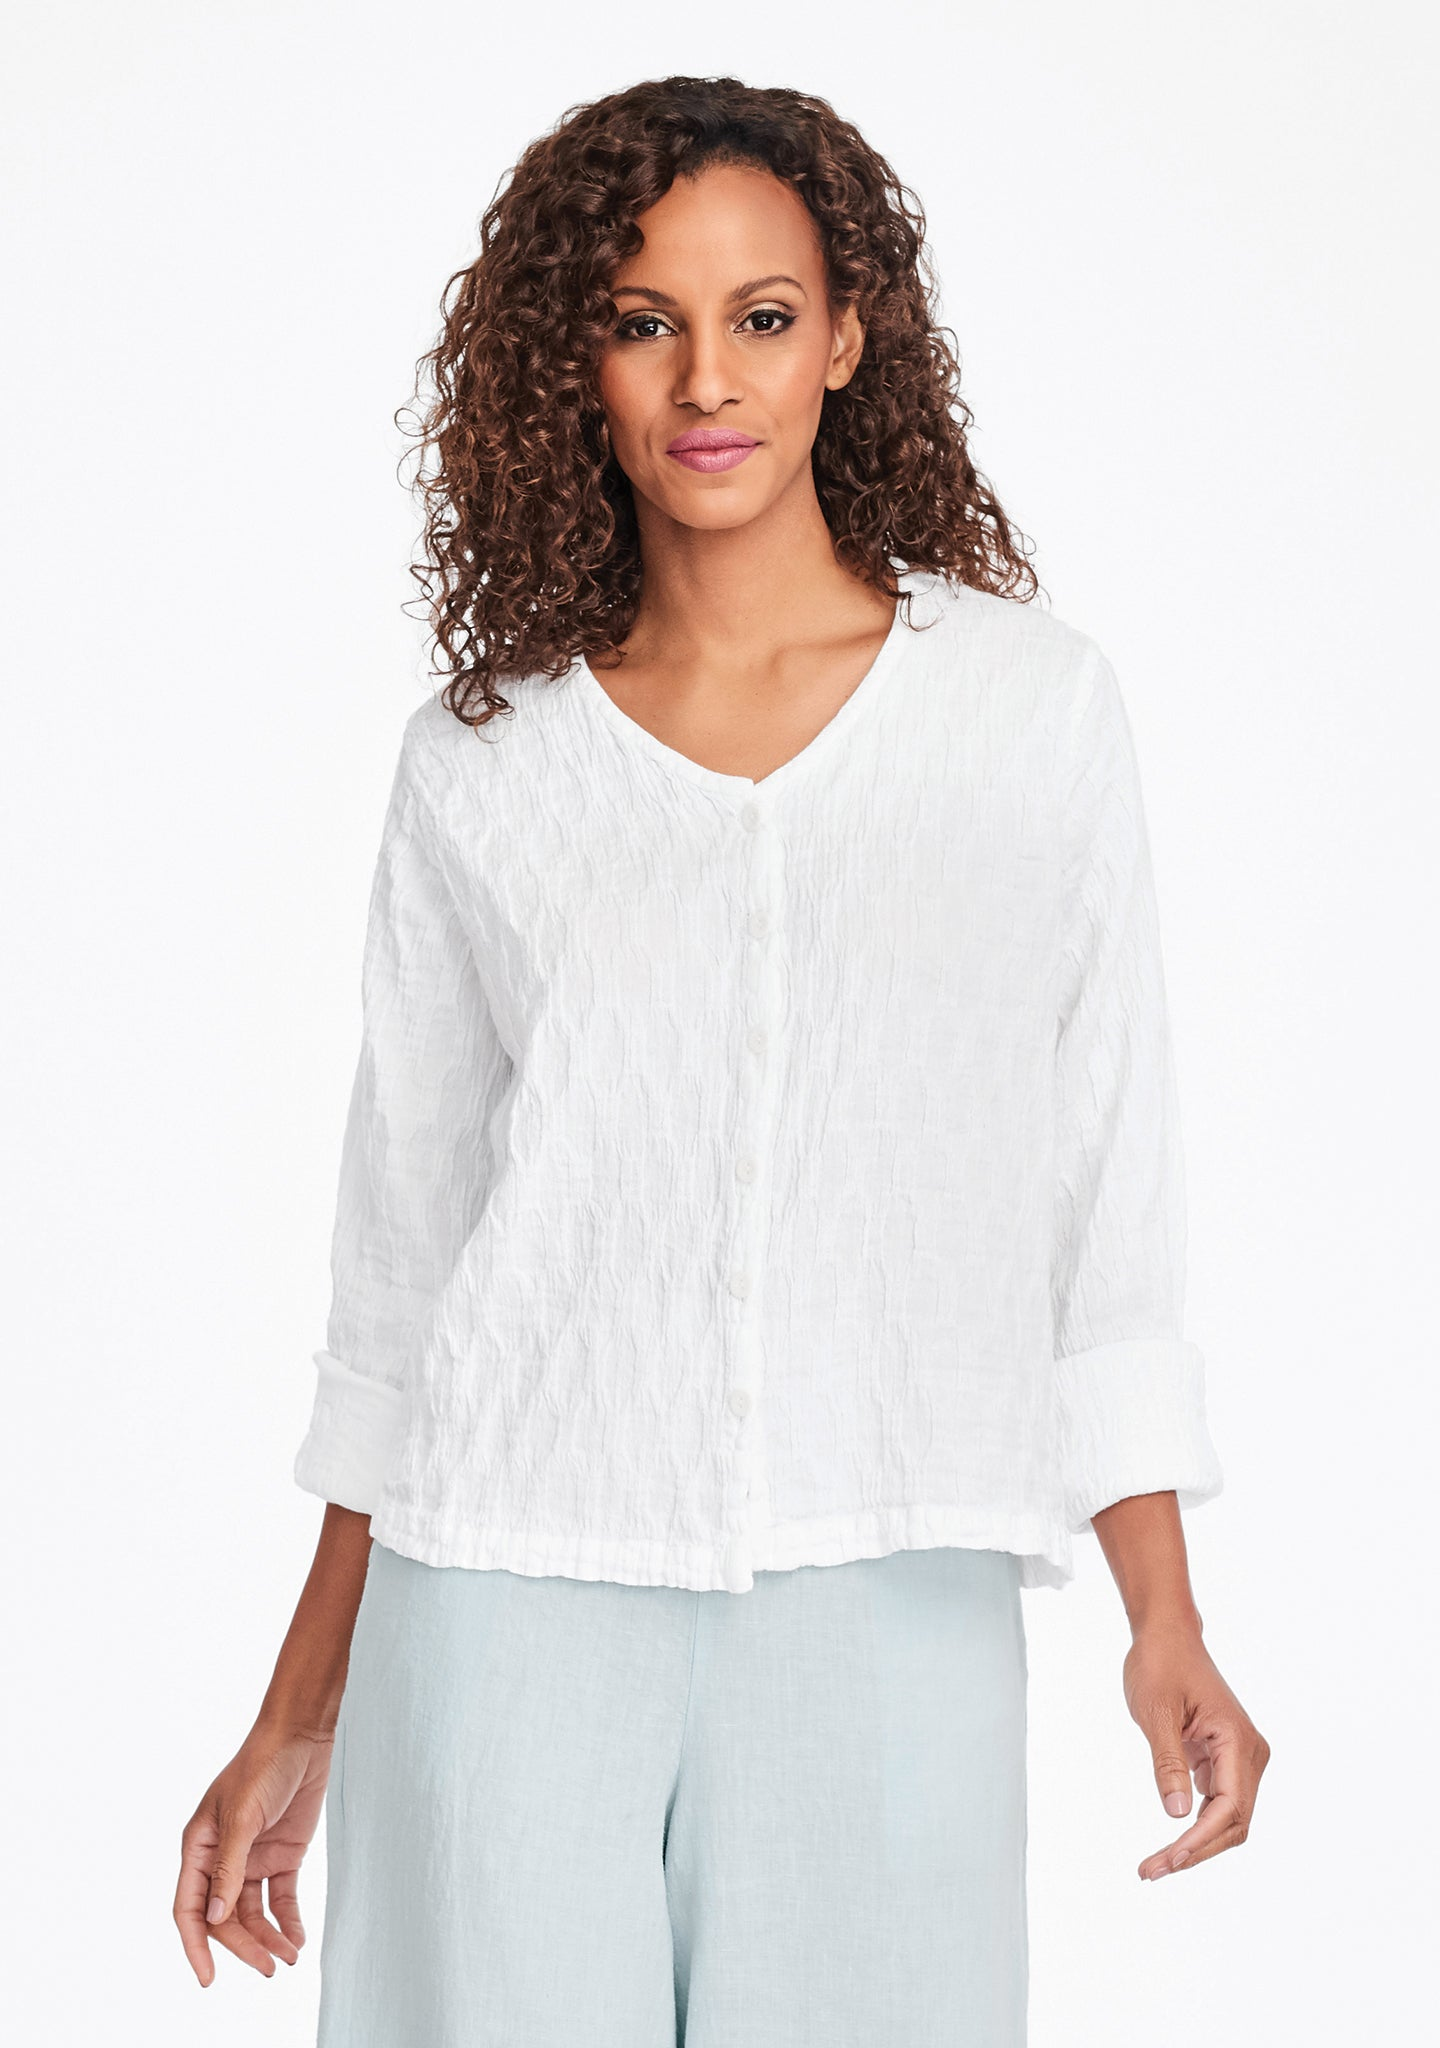 v neck cute cardi linen cardigan white